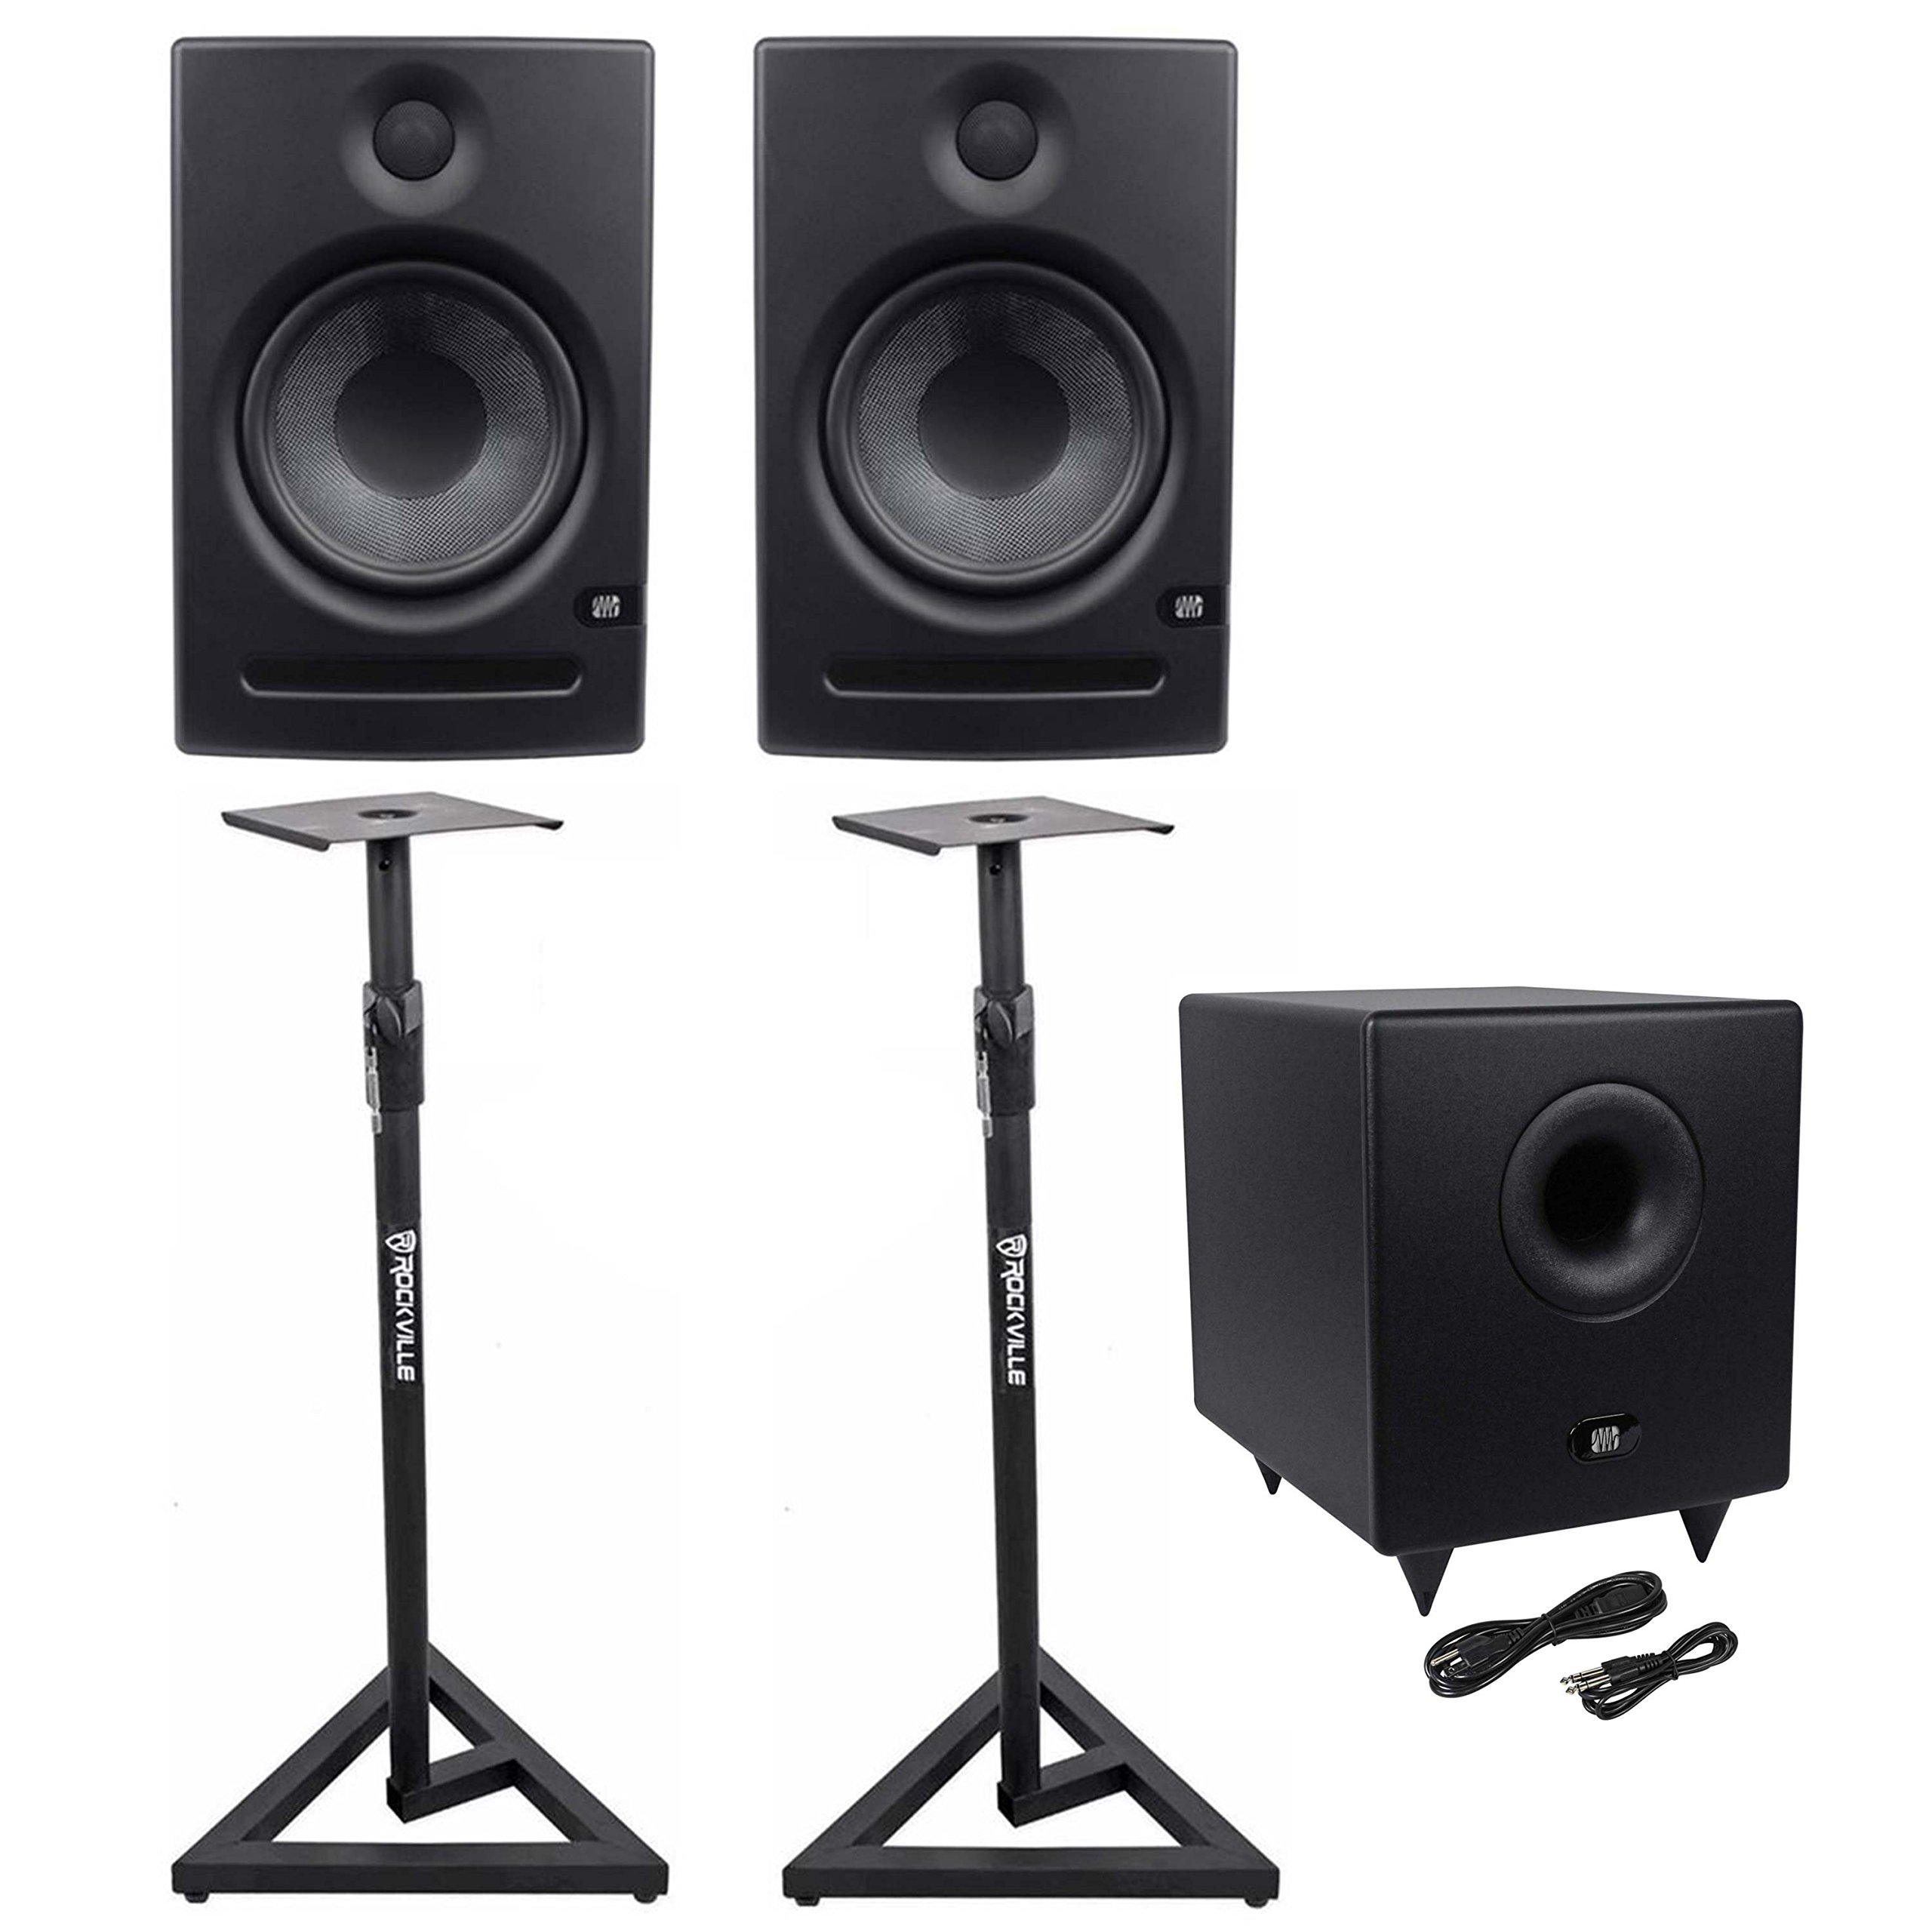 """Package: (2) Presonus Eris E8 8"""" High-Definition 2-Way Active Near Field Studio Monitors With a 1"""" Silk Dome Tweeter + Pair of Rockville RVSM1 Heavy Duty Near-Field Studio Monitor Stands + Presonus Temblor T8 200 watt 8"""" Active Powered Studio Subwoofer with Crossover"""